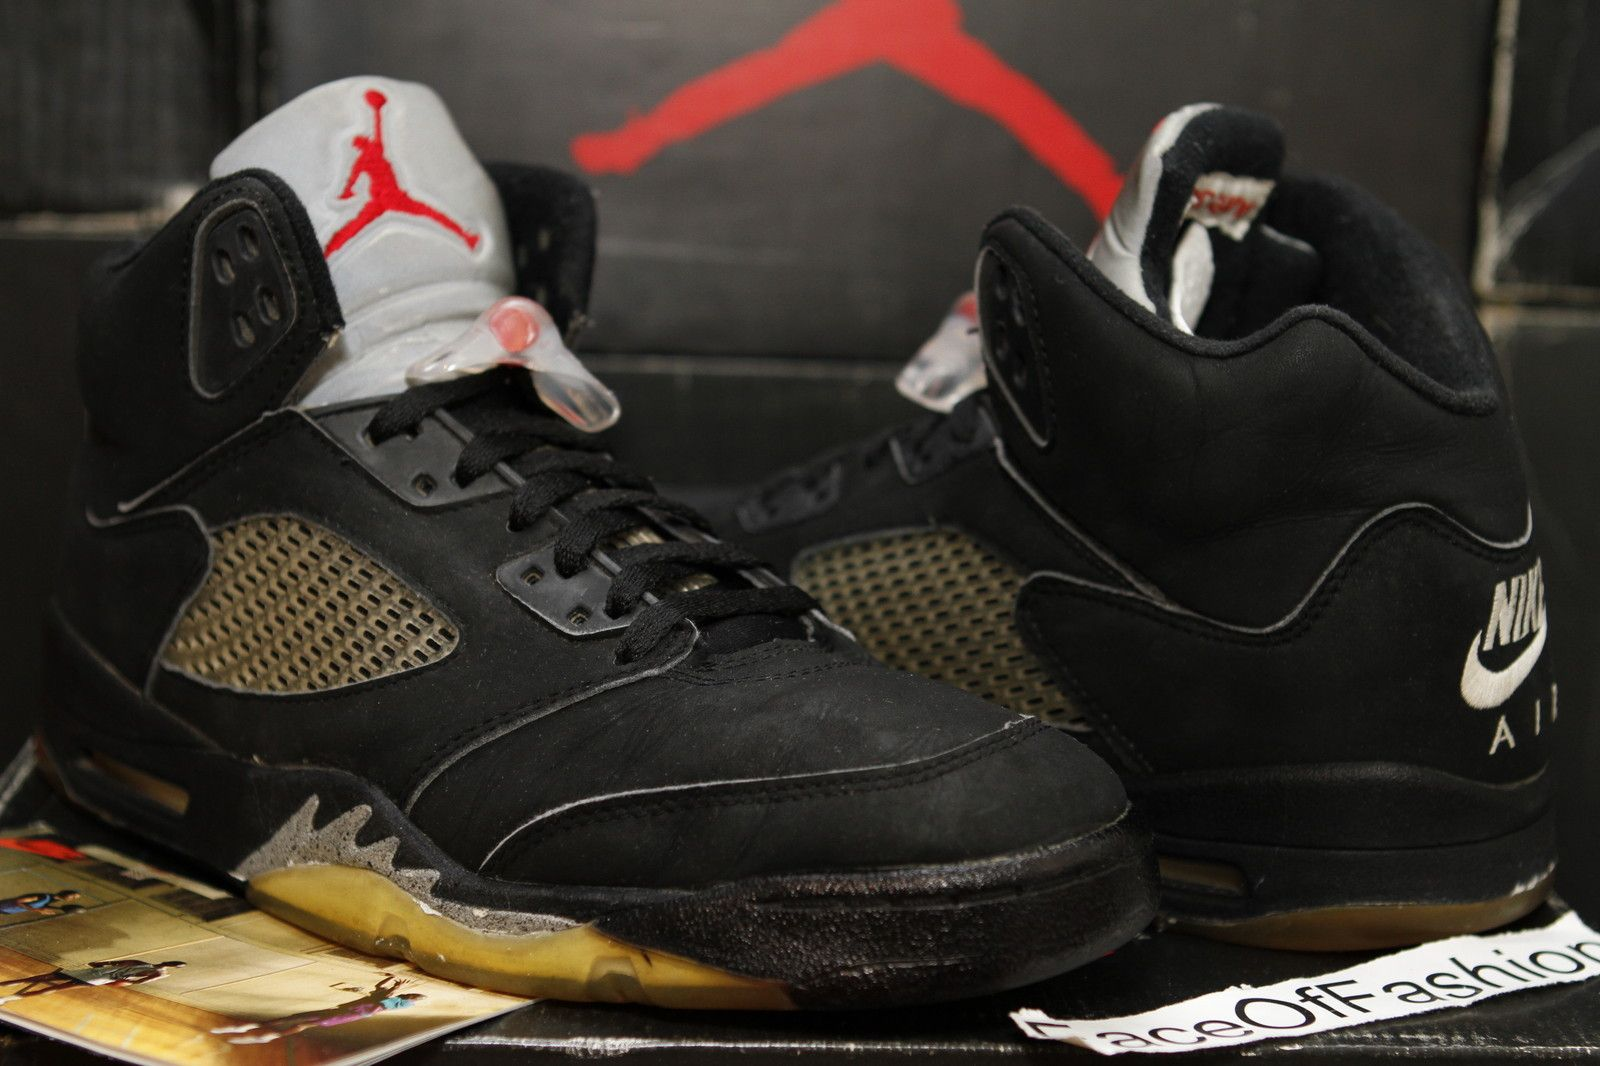 73693bb099c Details about NIKE AIR JORDAN 5 V Retro OG Black Metallic Silver SZ ...